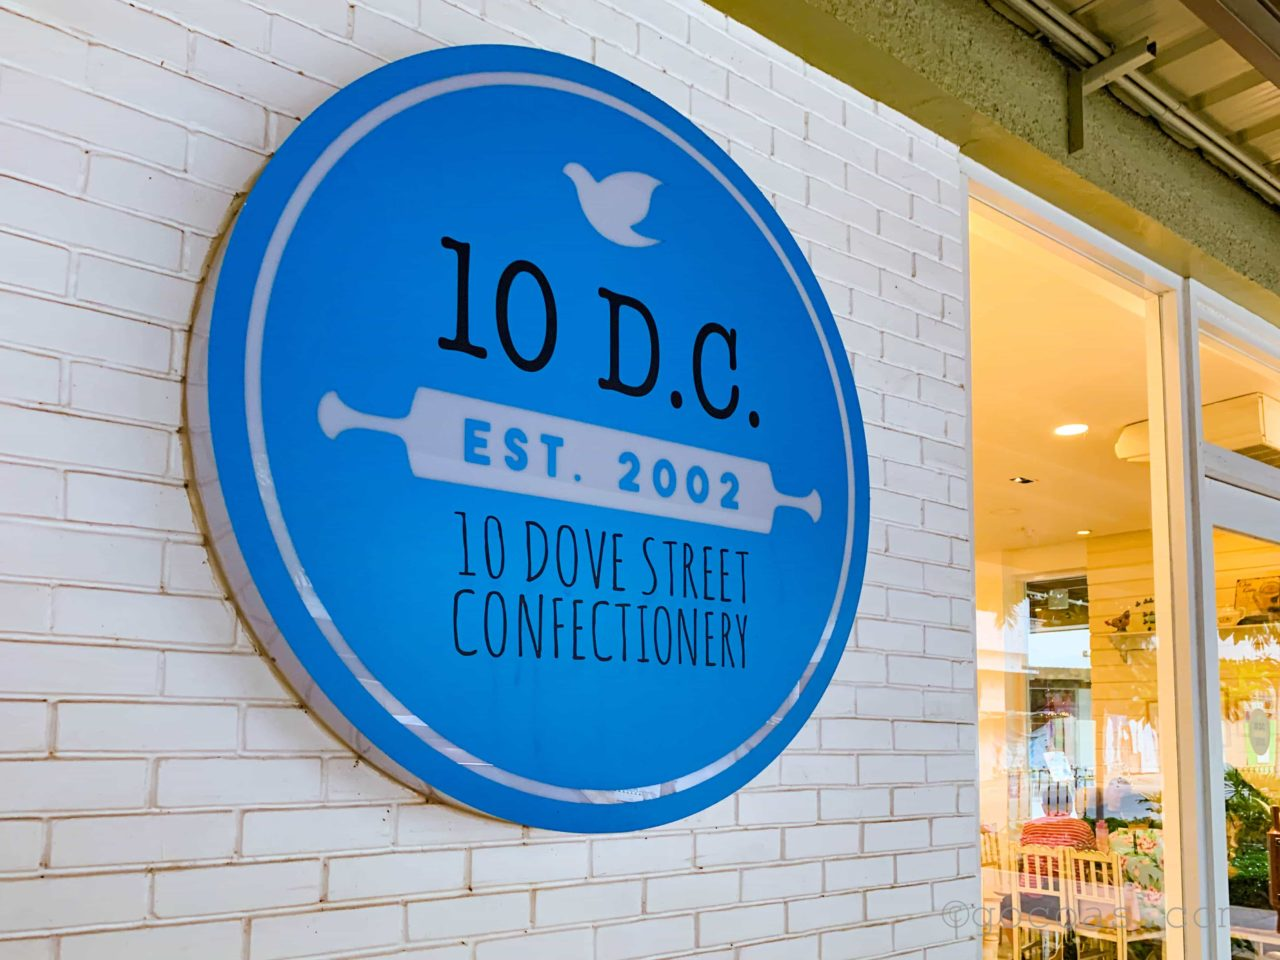 10 Dove Street Confectionery(10 D.C.)ロゴ